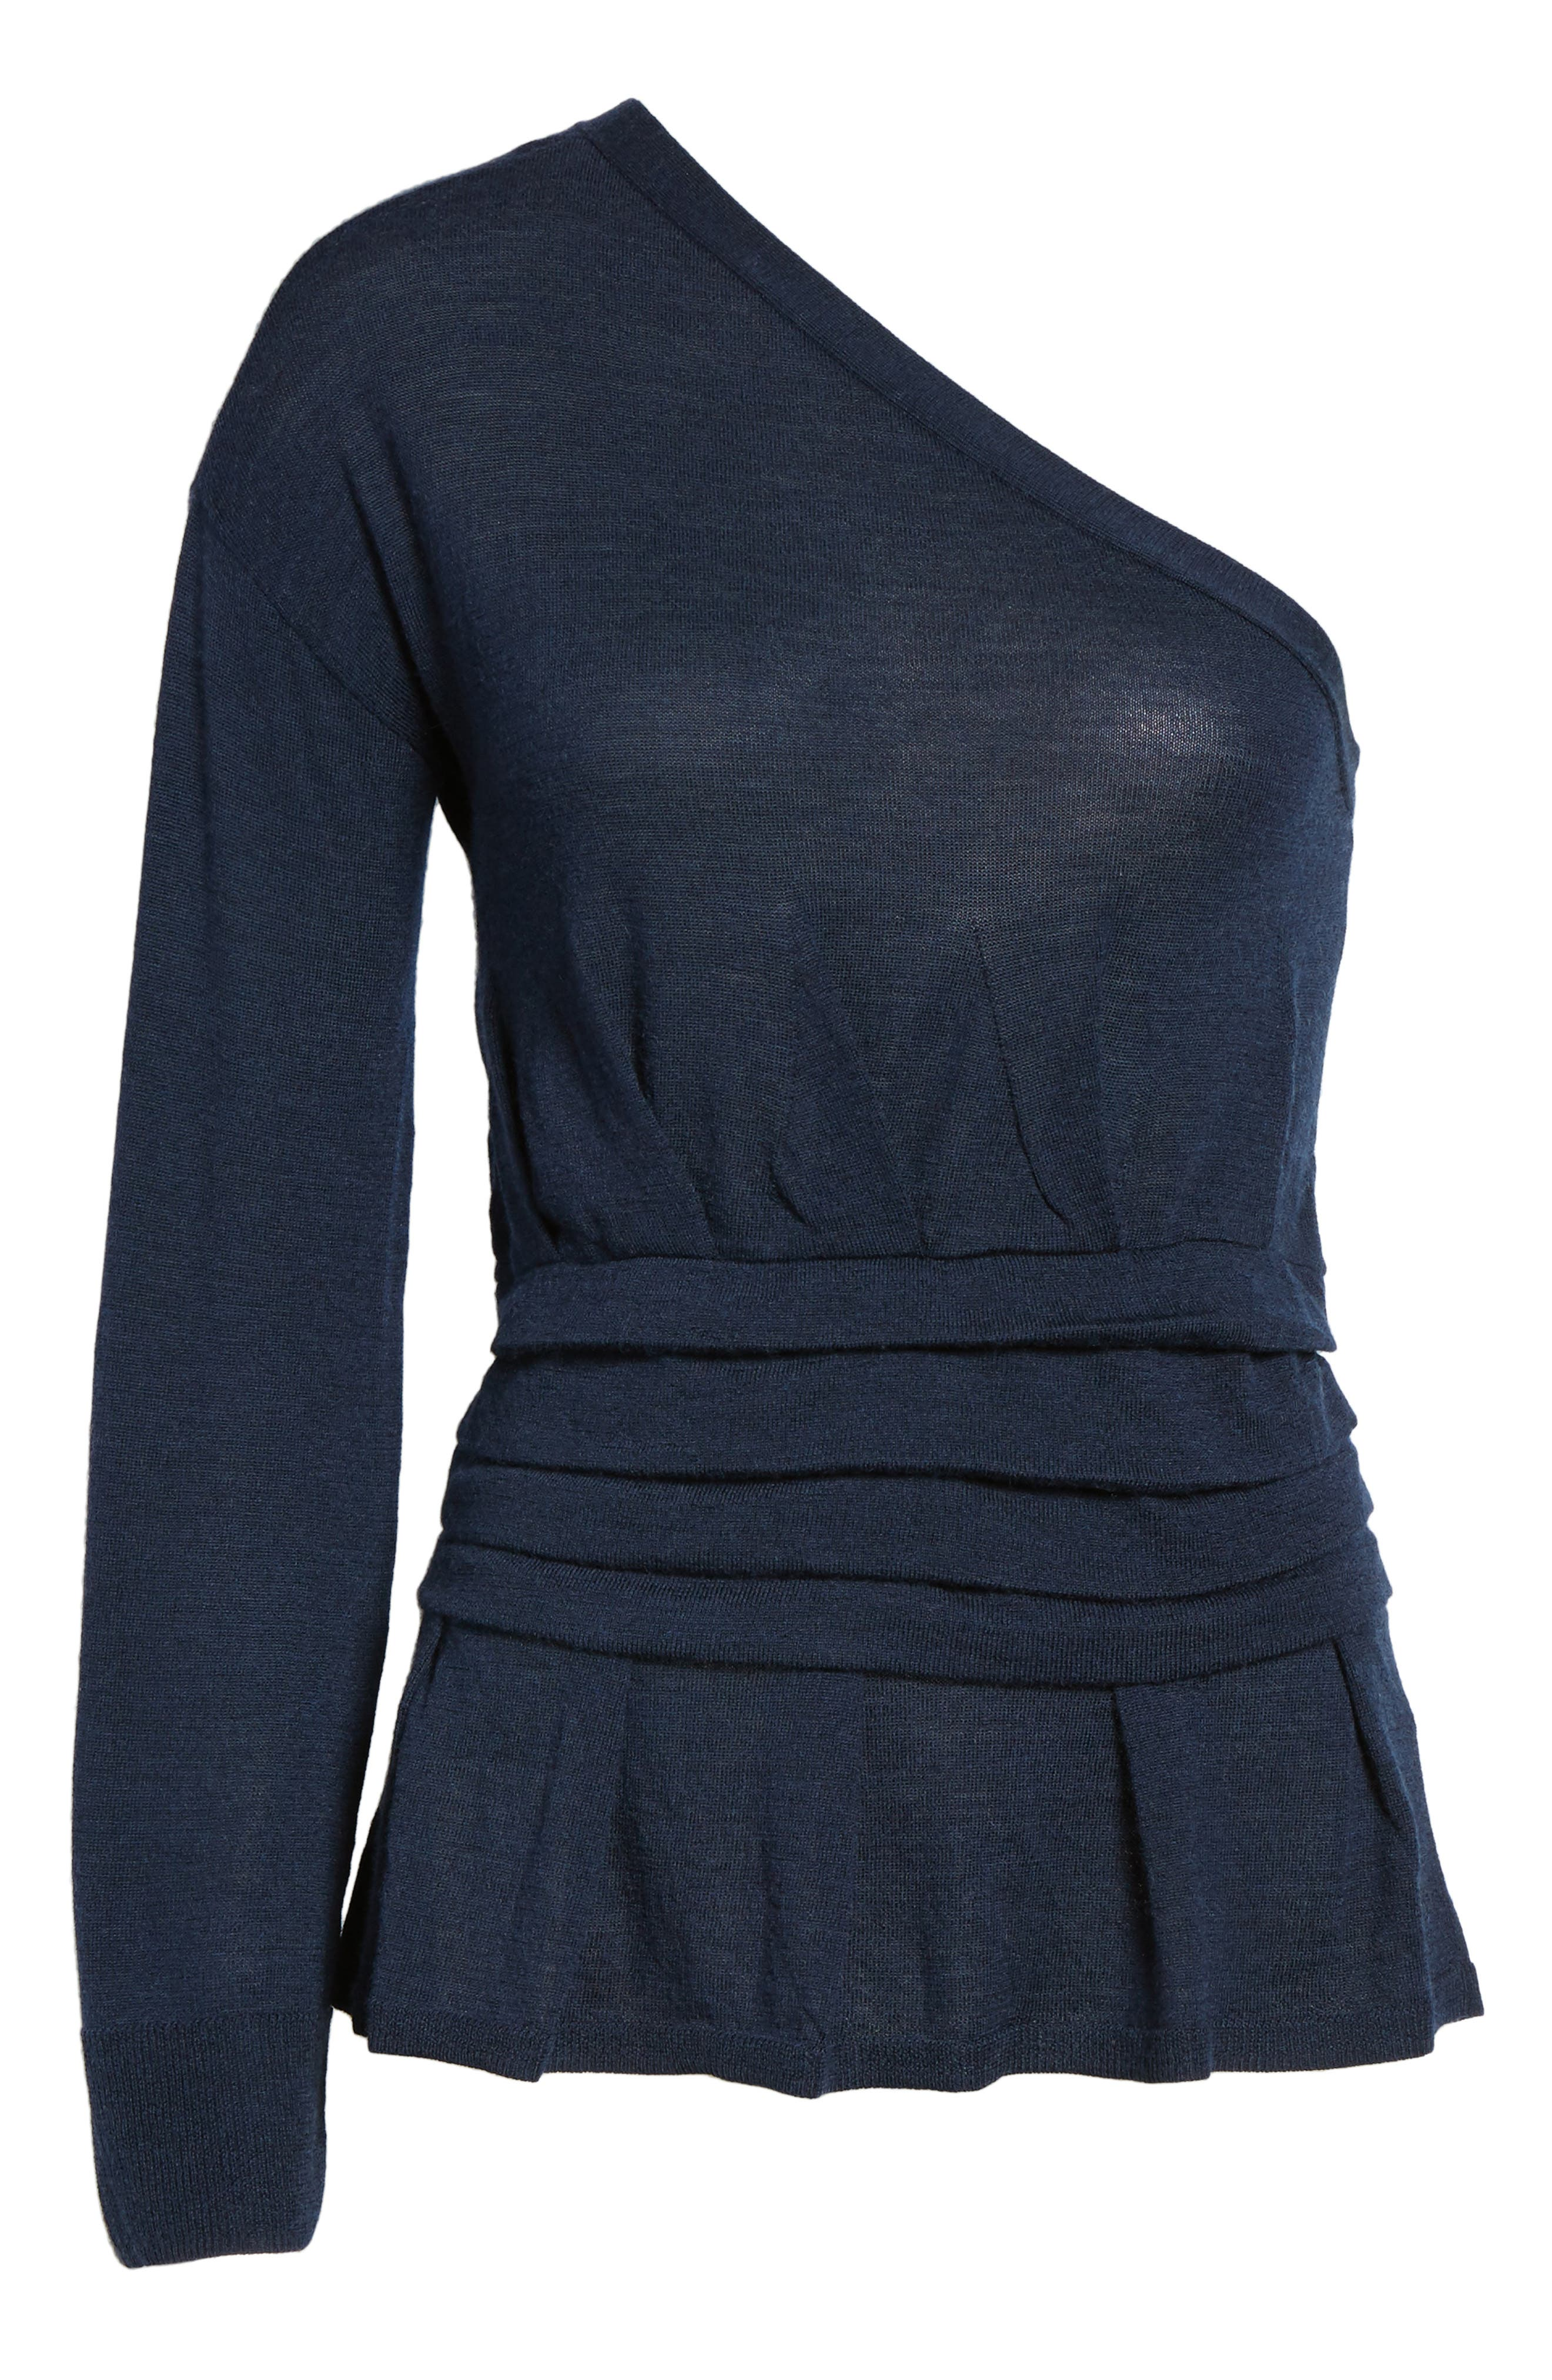 x Something Navy One-Sleeve Sweater,                             Alternate thumbnail 6, color,                             400